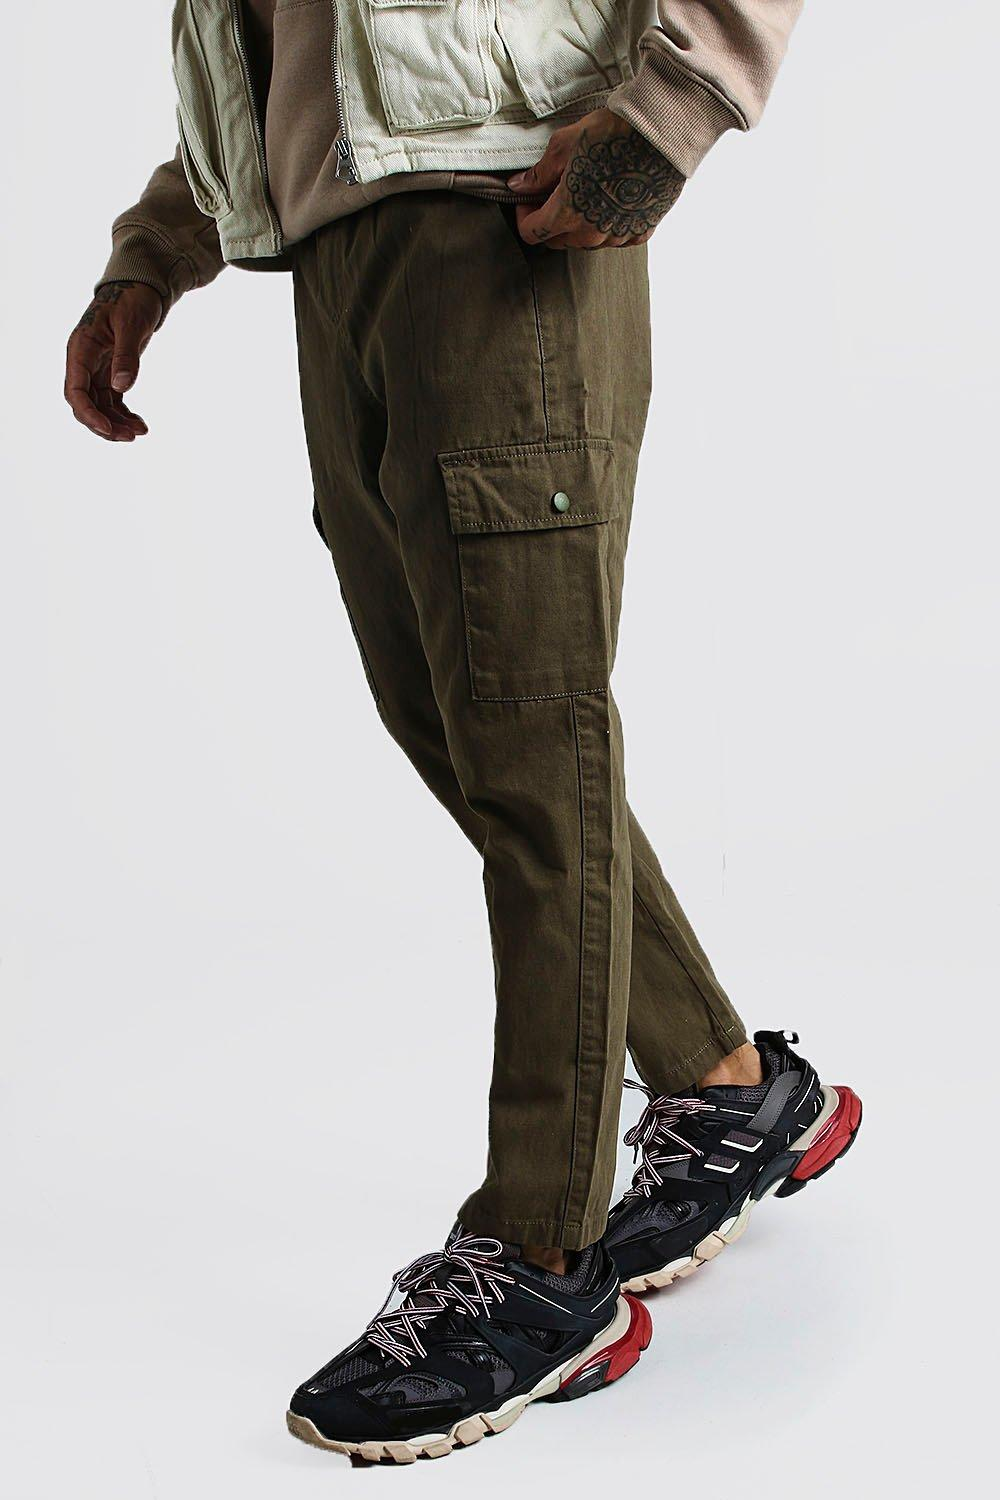 Men's Steampunk Pants & Trousers Mens Twill Cargo Pants - Green $40.00 AT vintagedancer.com